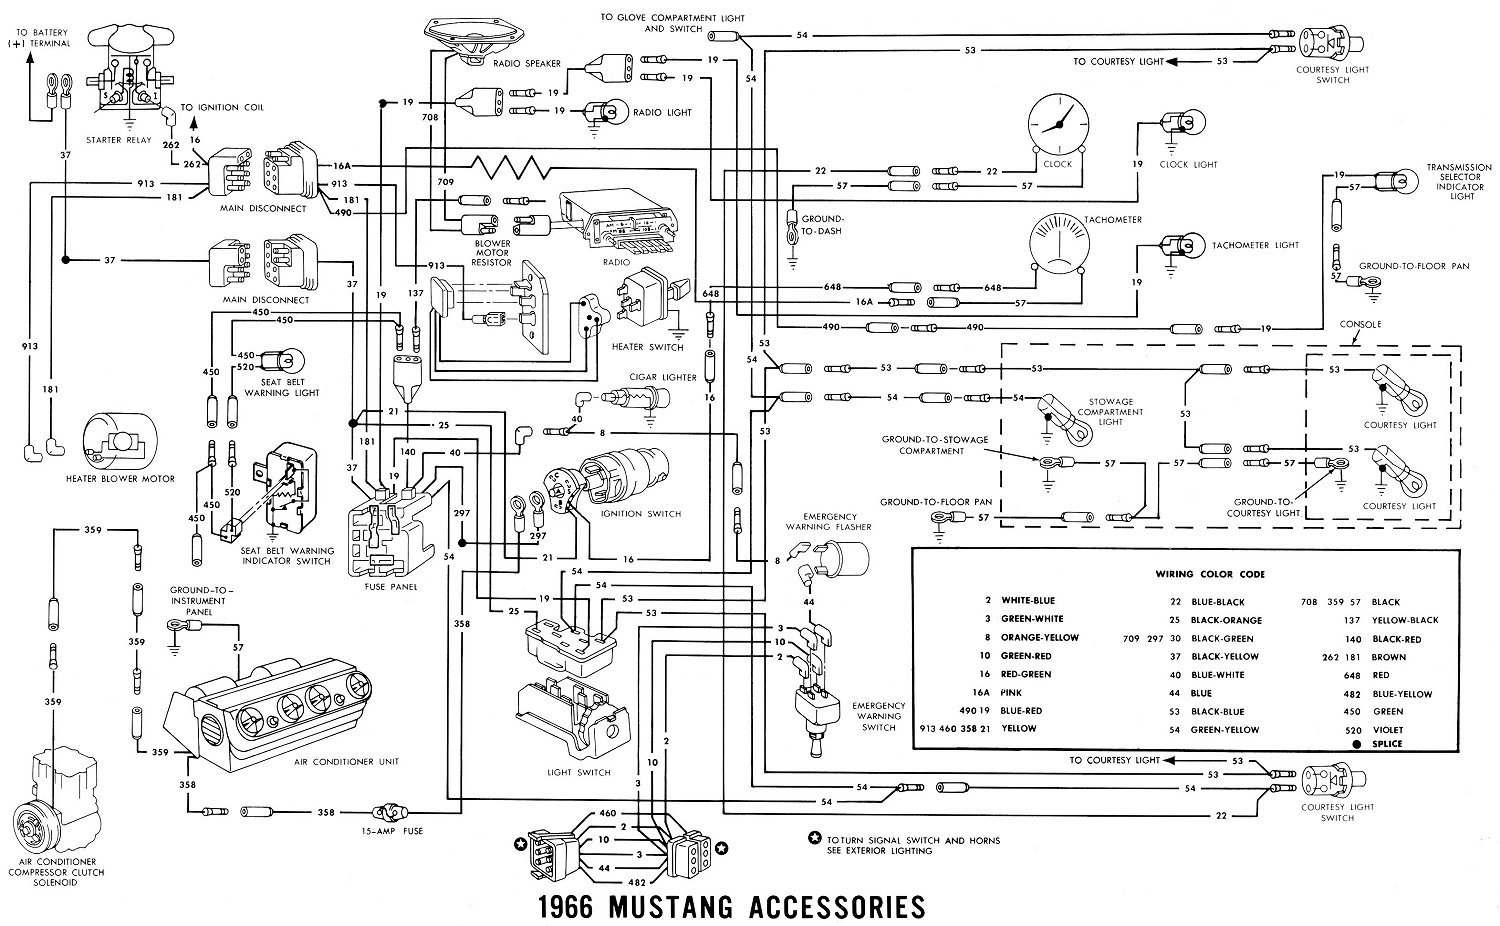 112253d1286219572 1966 mustang curtesy light problem 1966 ford mustang accessories wiring diagram the 2002 ford escape v6 wiring diagram for the charging system 2005 mustang gt ignition wiring diagram at virtualis.co